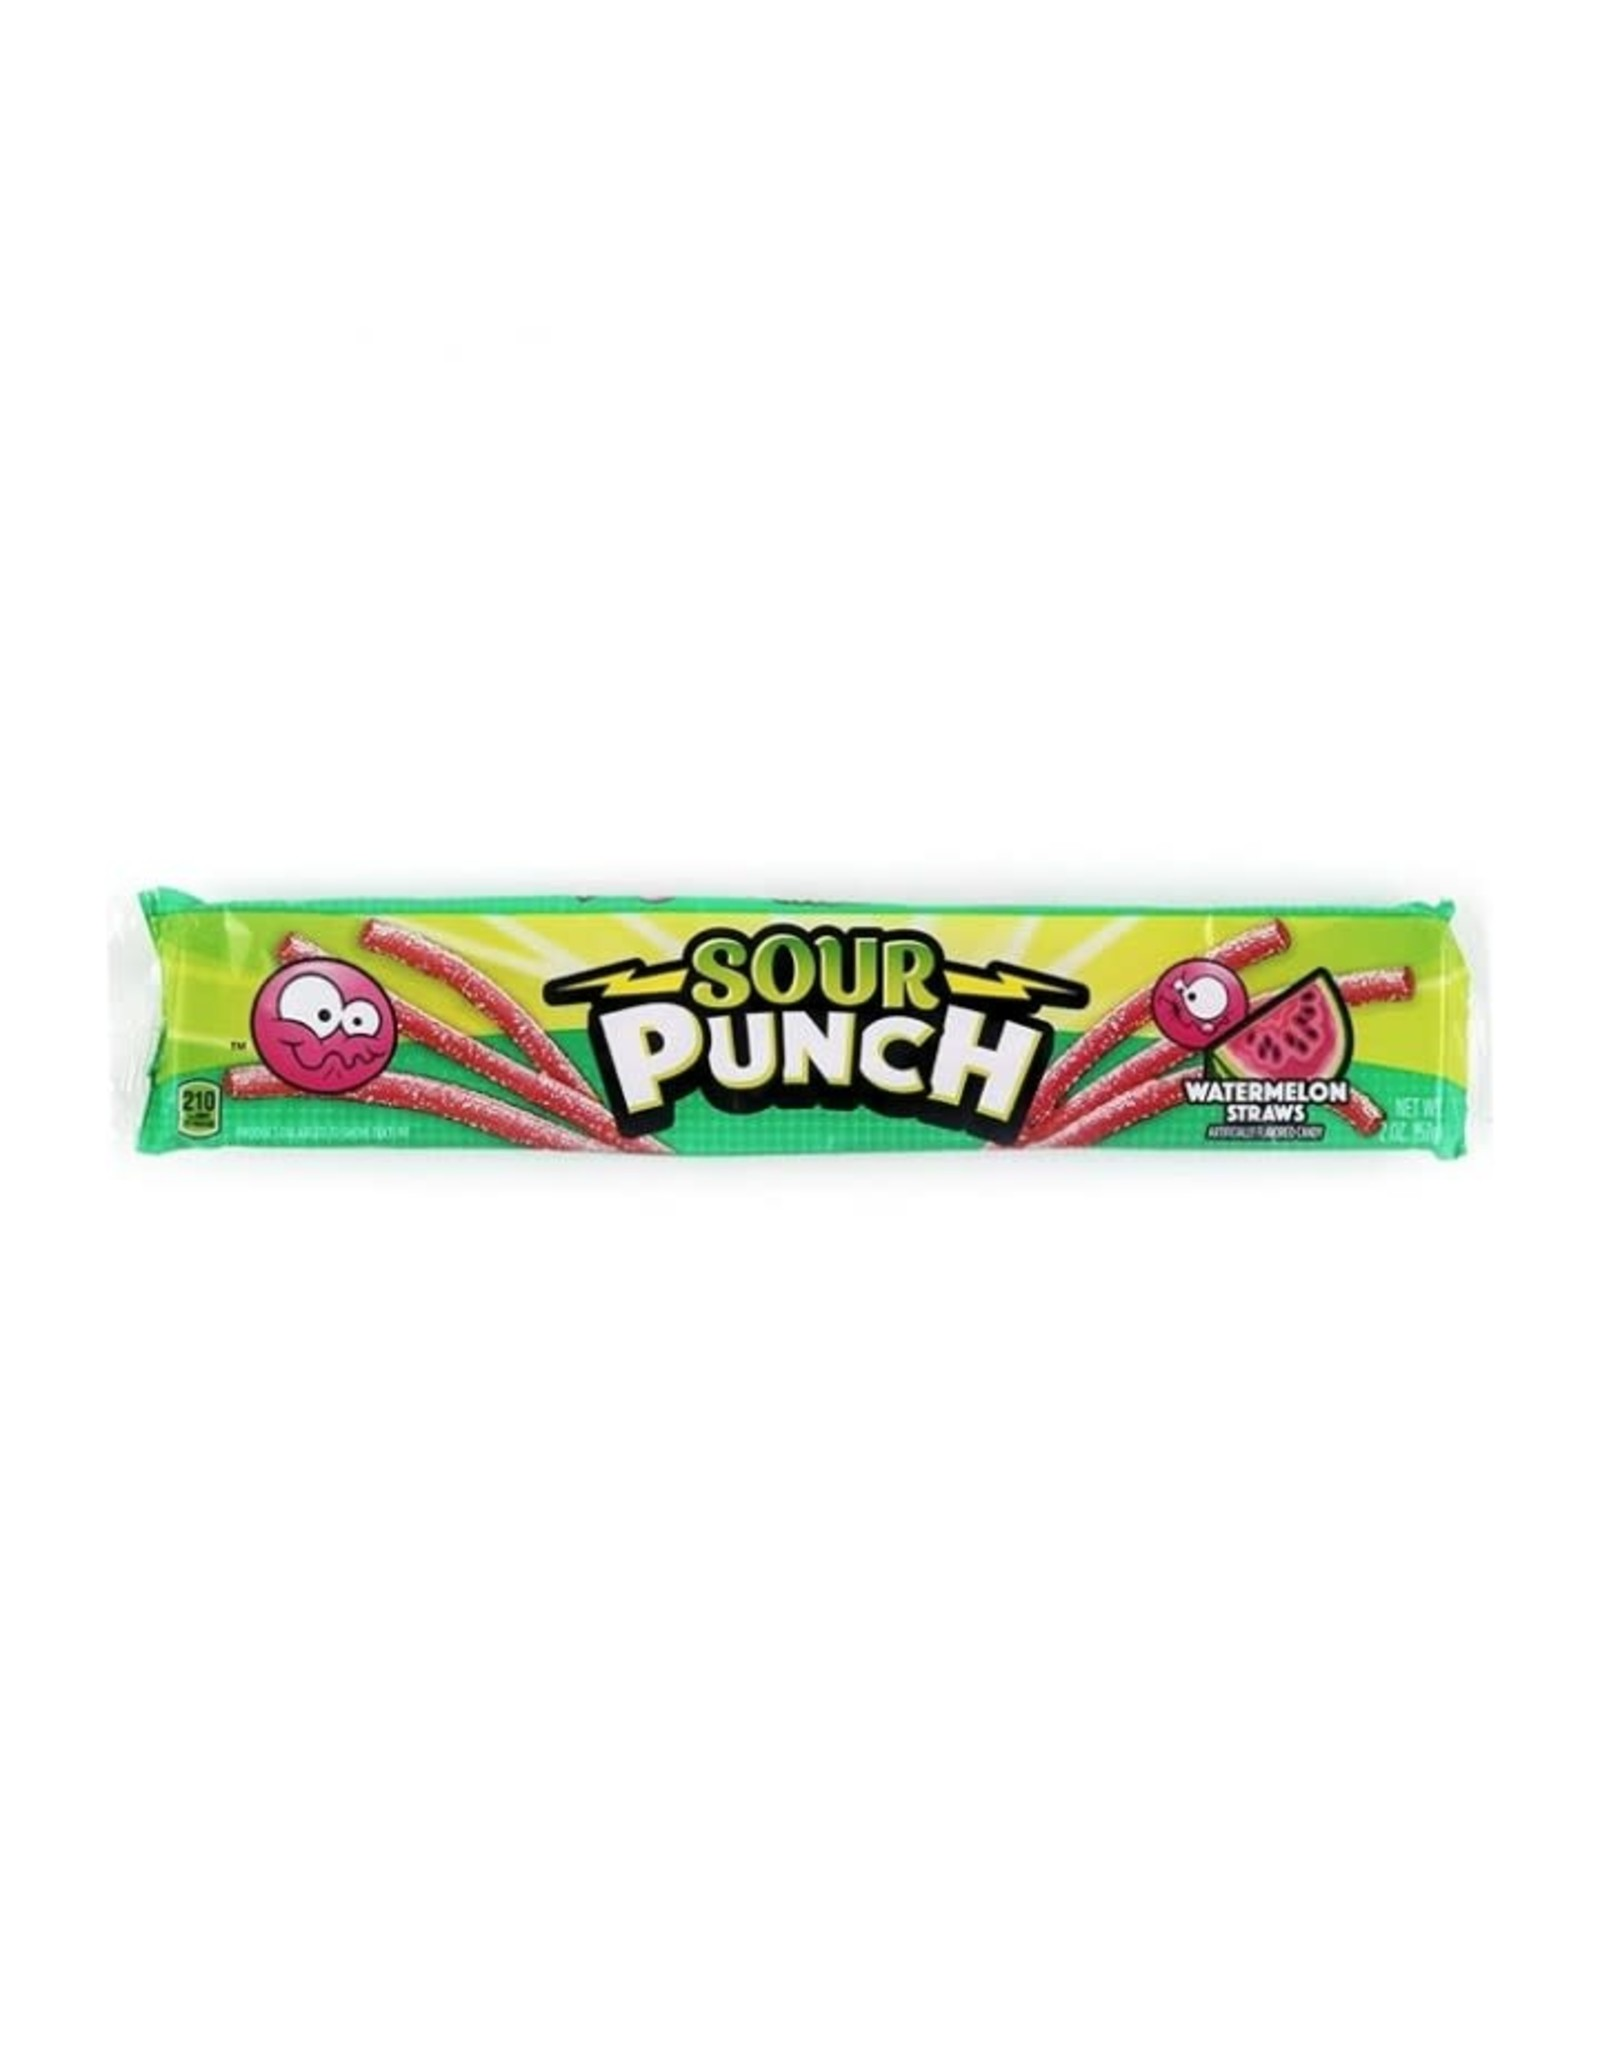 Sour Punch - Watermelon Straws - 57g